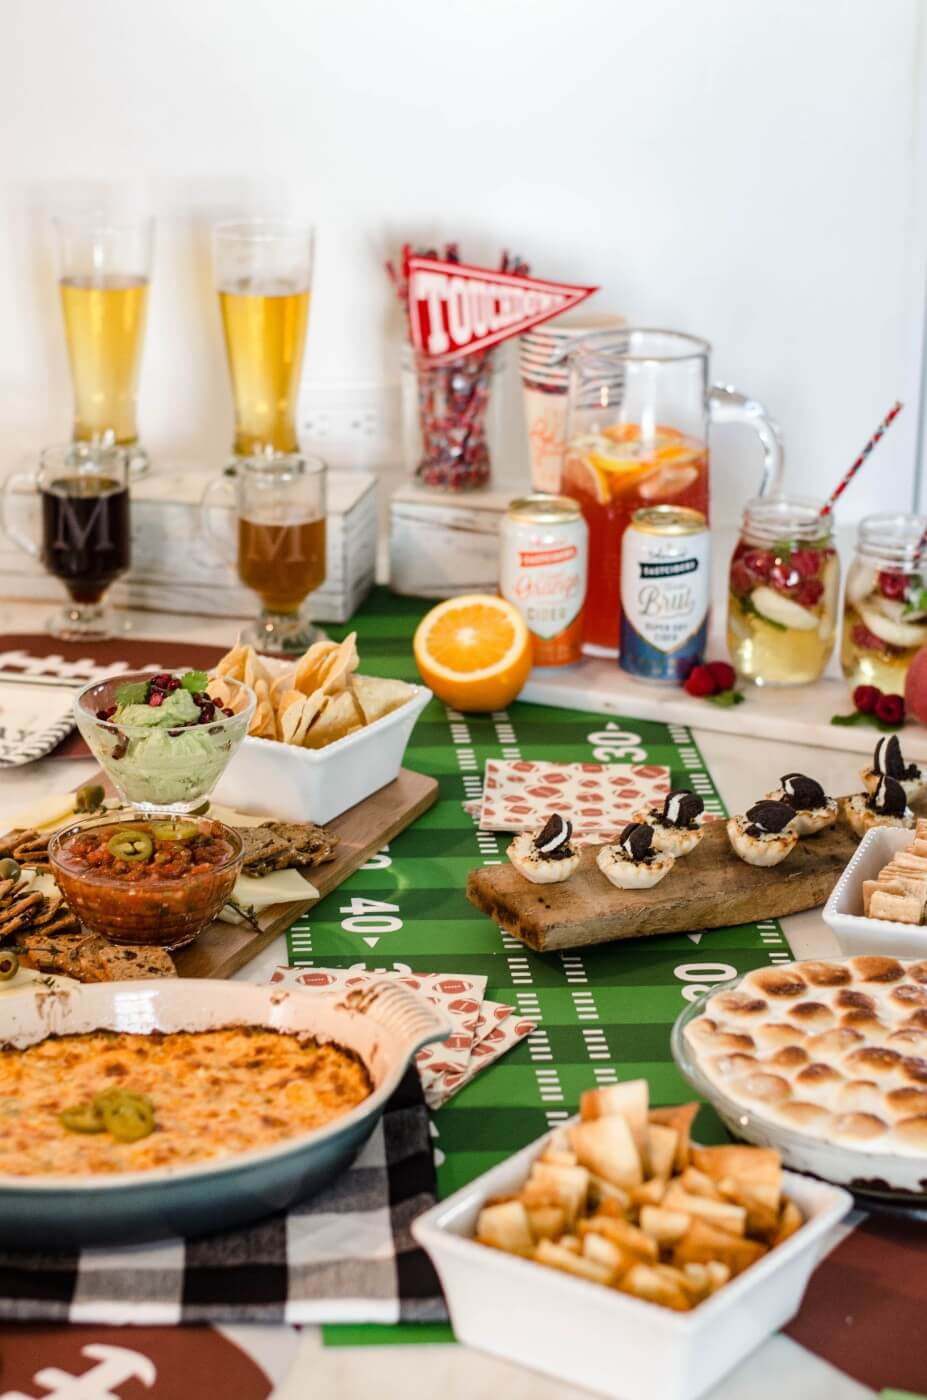 Hosting A Super Bowl Party: My Recipes & Styling Must-Haves